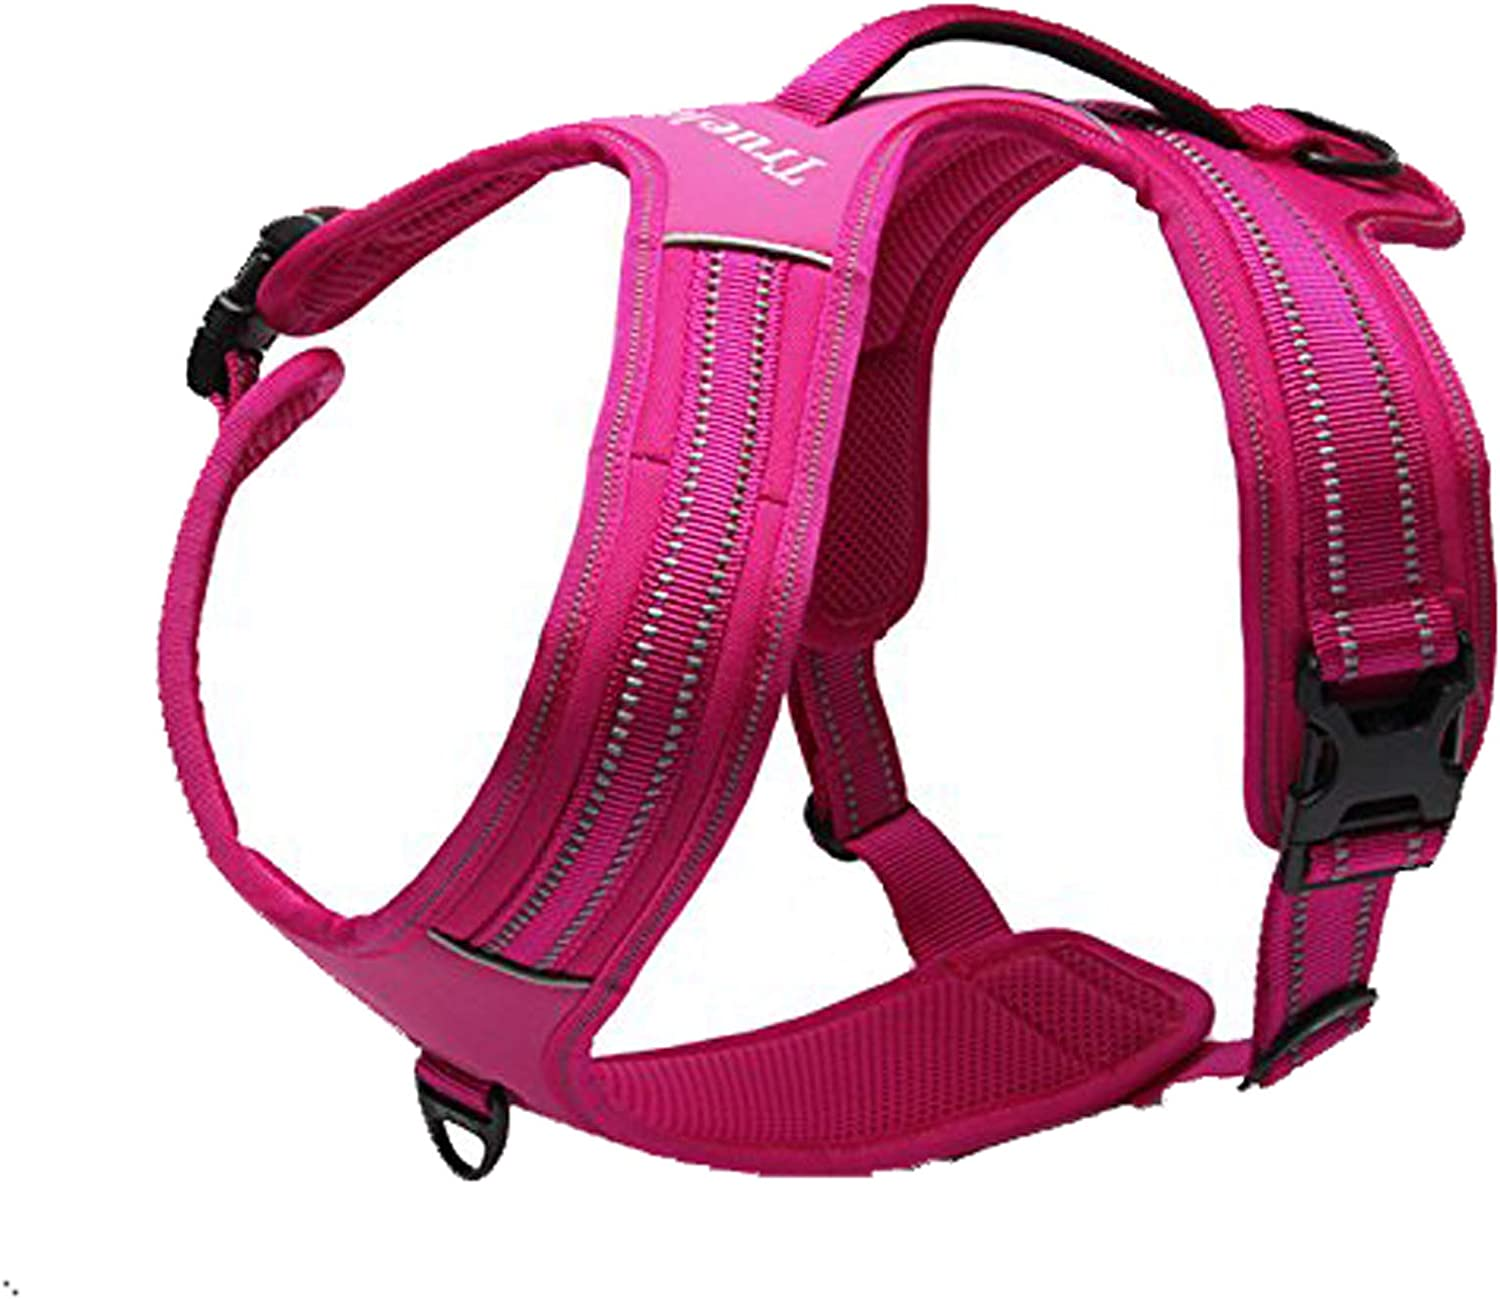 TRUE LOVE Reflective Dog Harness Soft No-Pull Padded with Sales for sale Outlet ☆ Free Shipping Handle